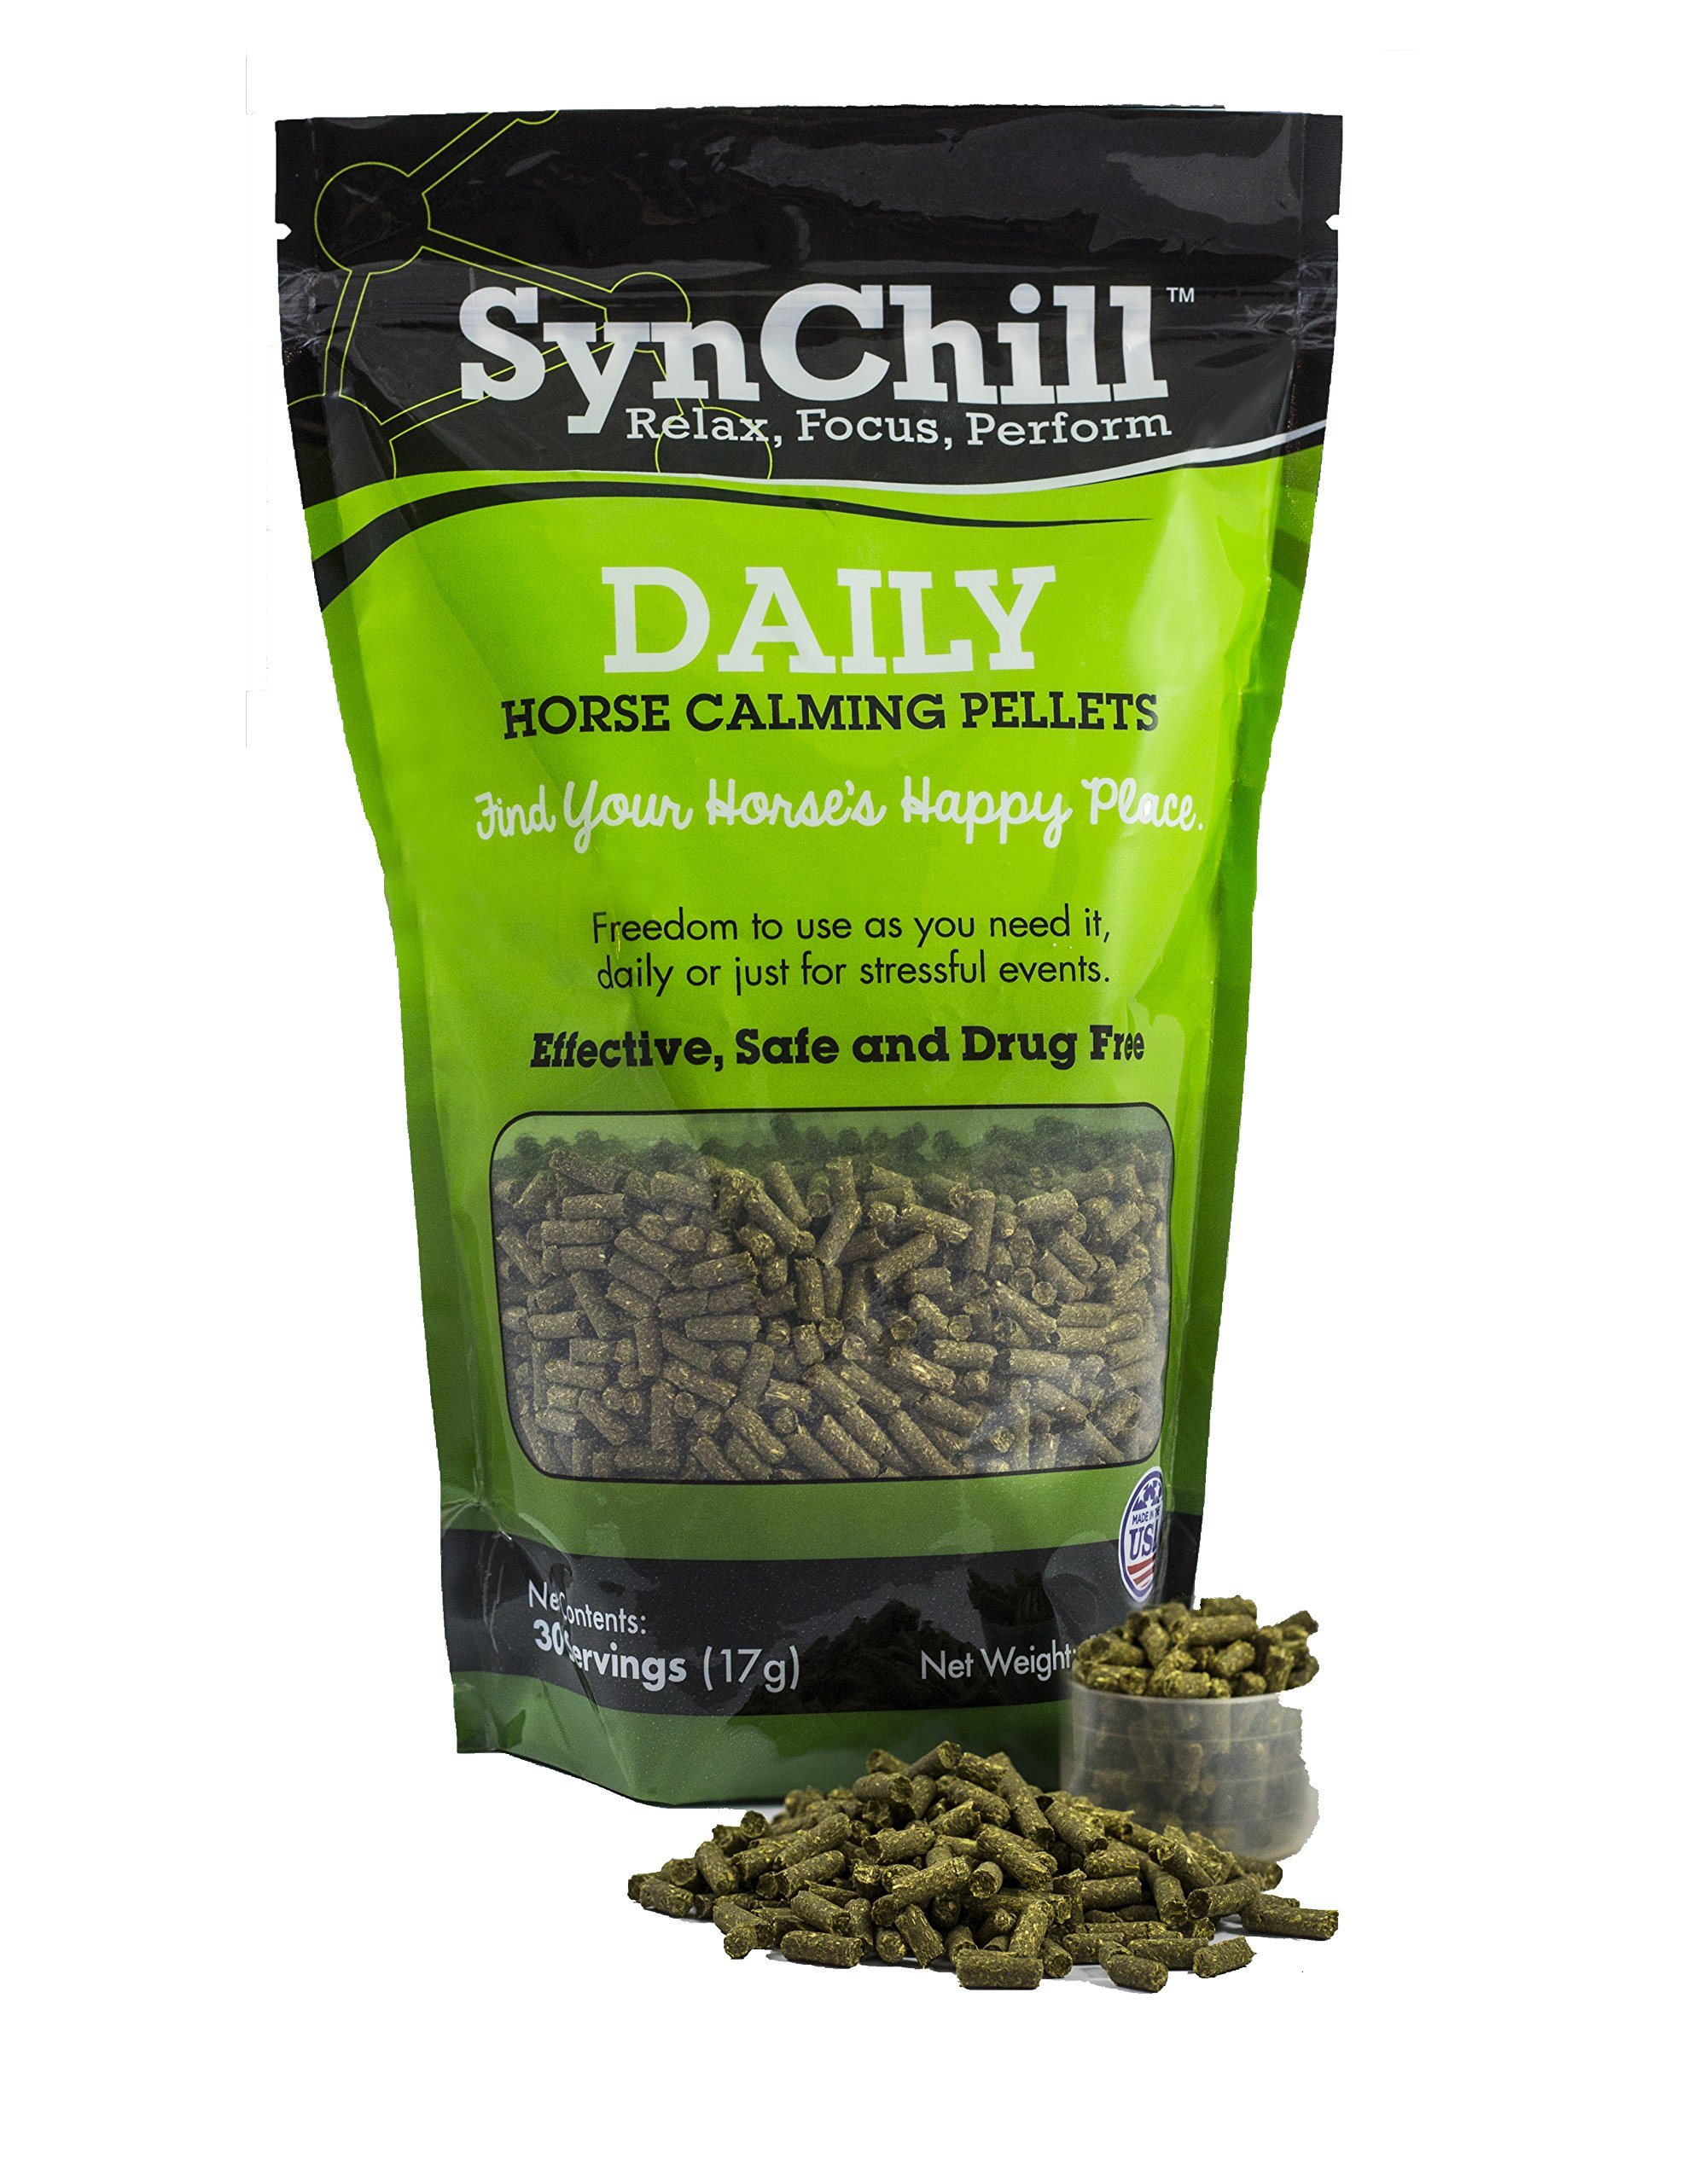 SynChill Daily Horse Calming Pellets by SynNutra (Image #1)